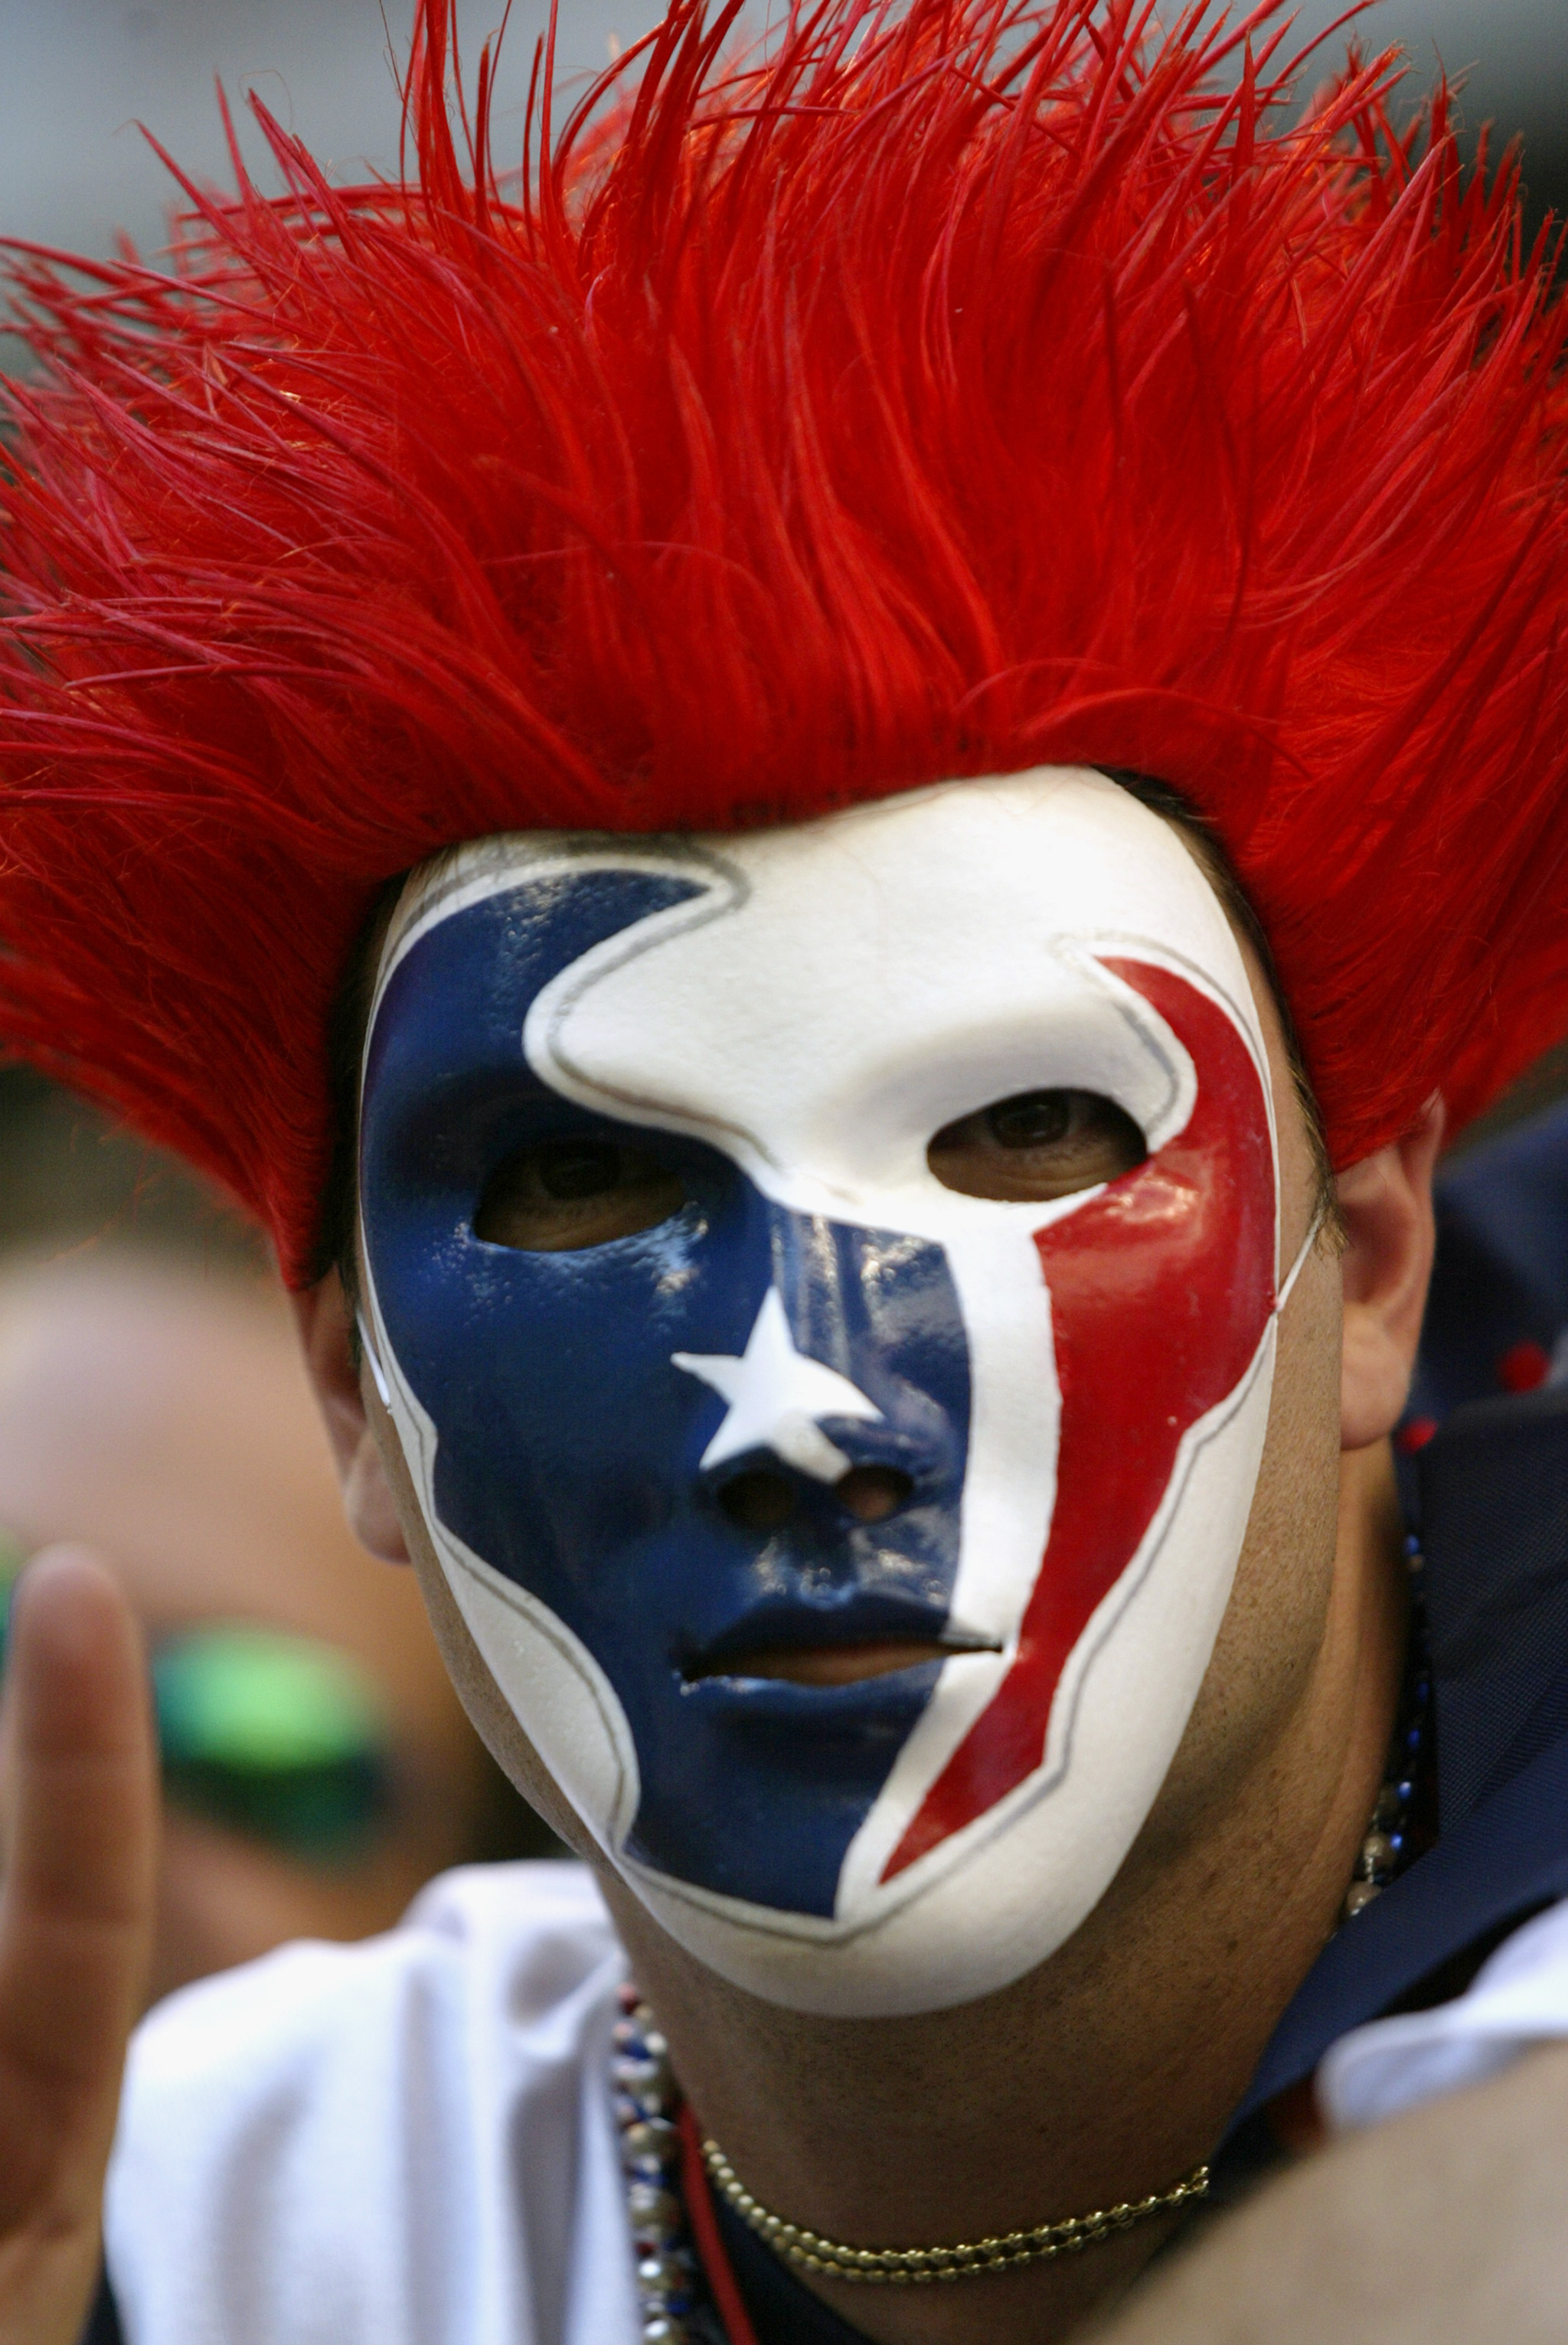 A fan of Houston Texans show support